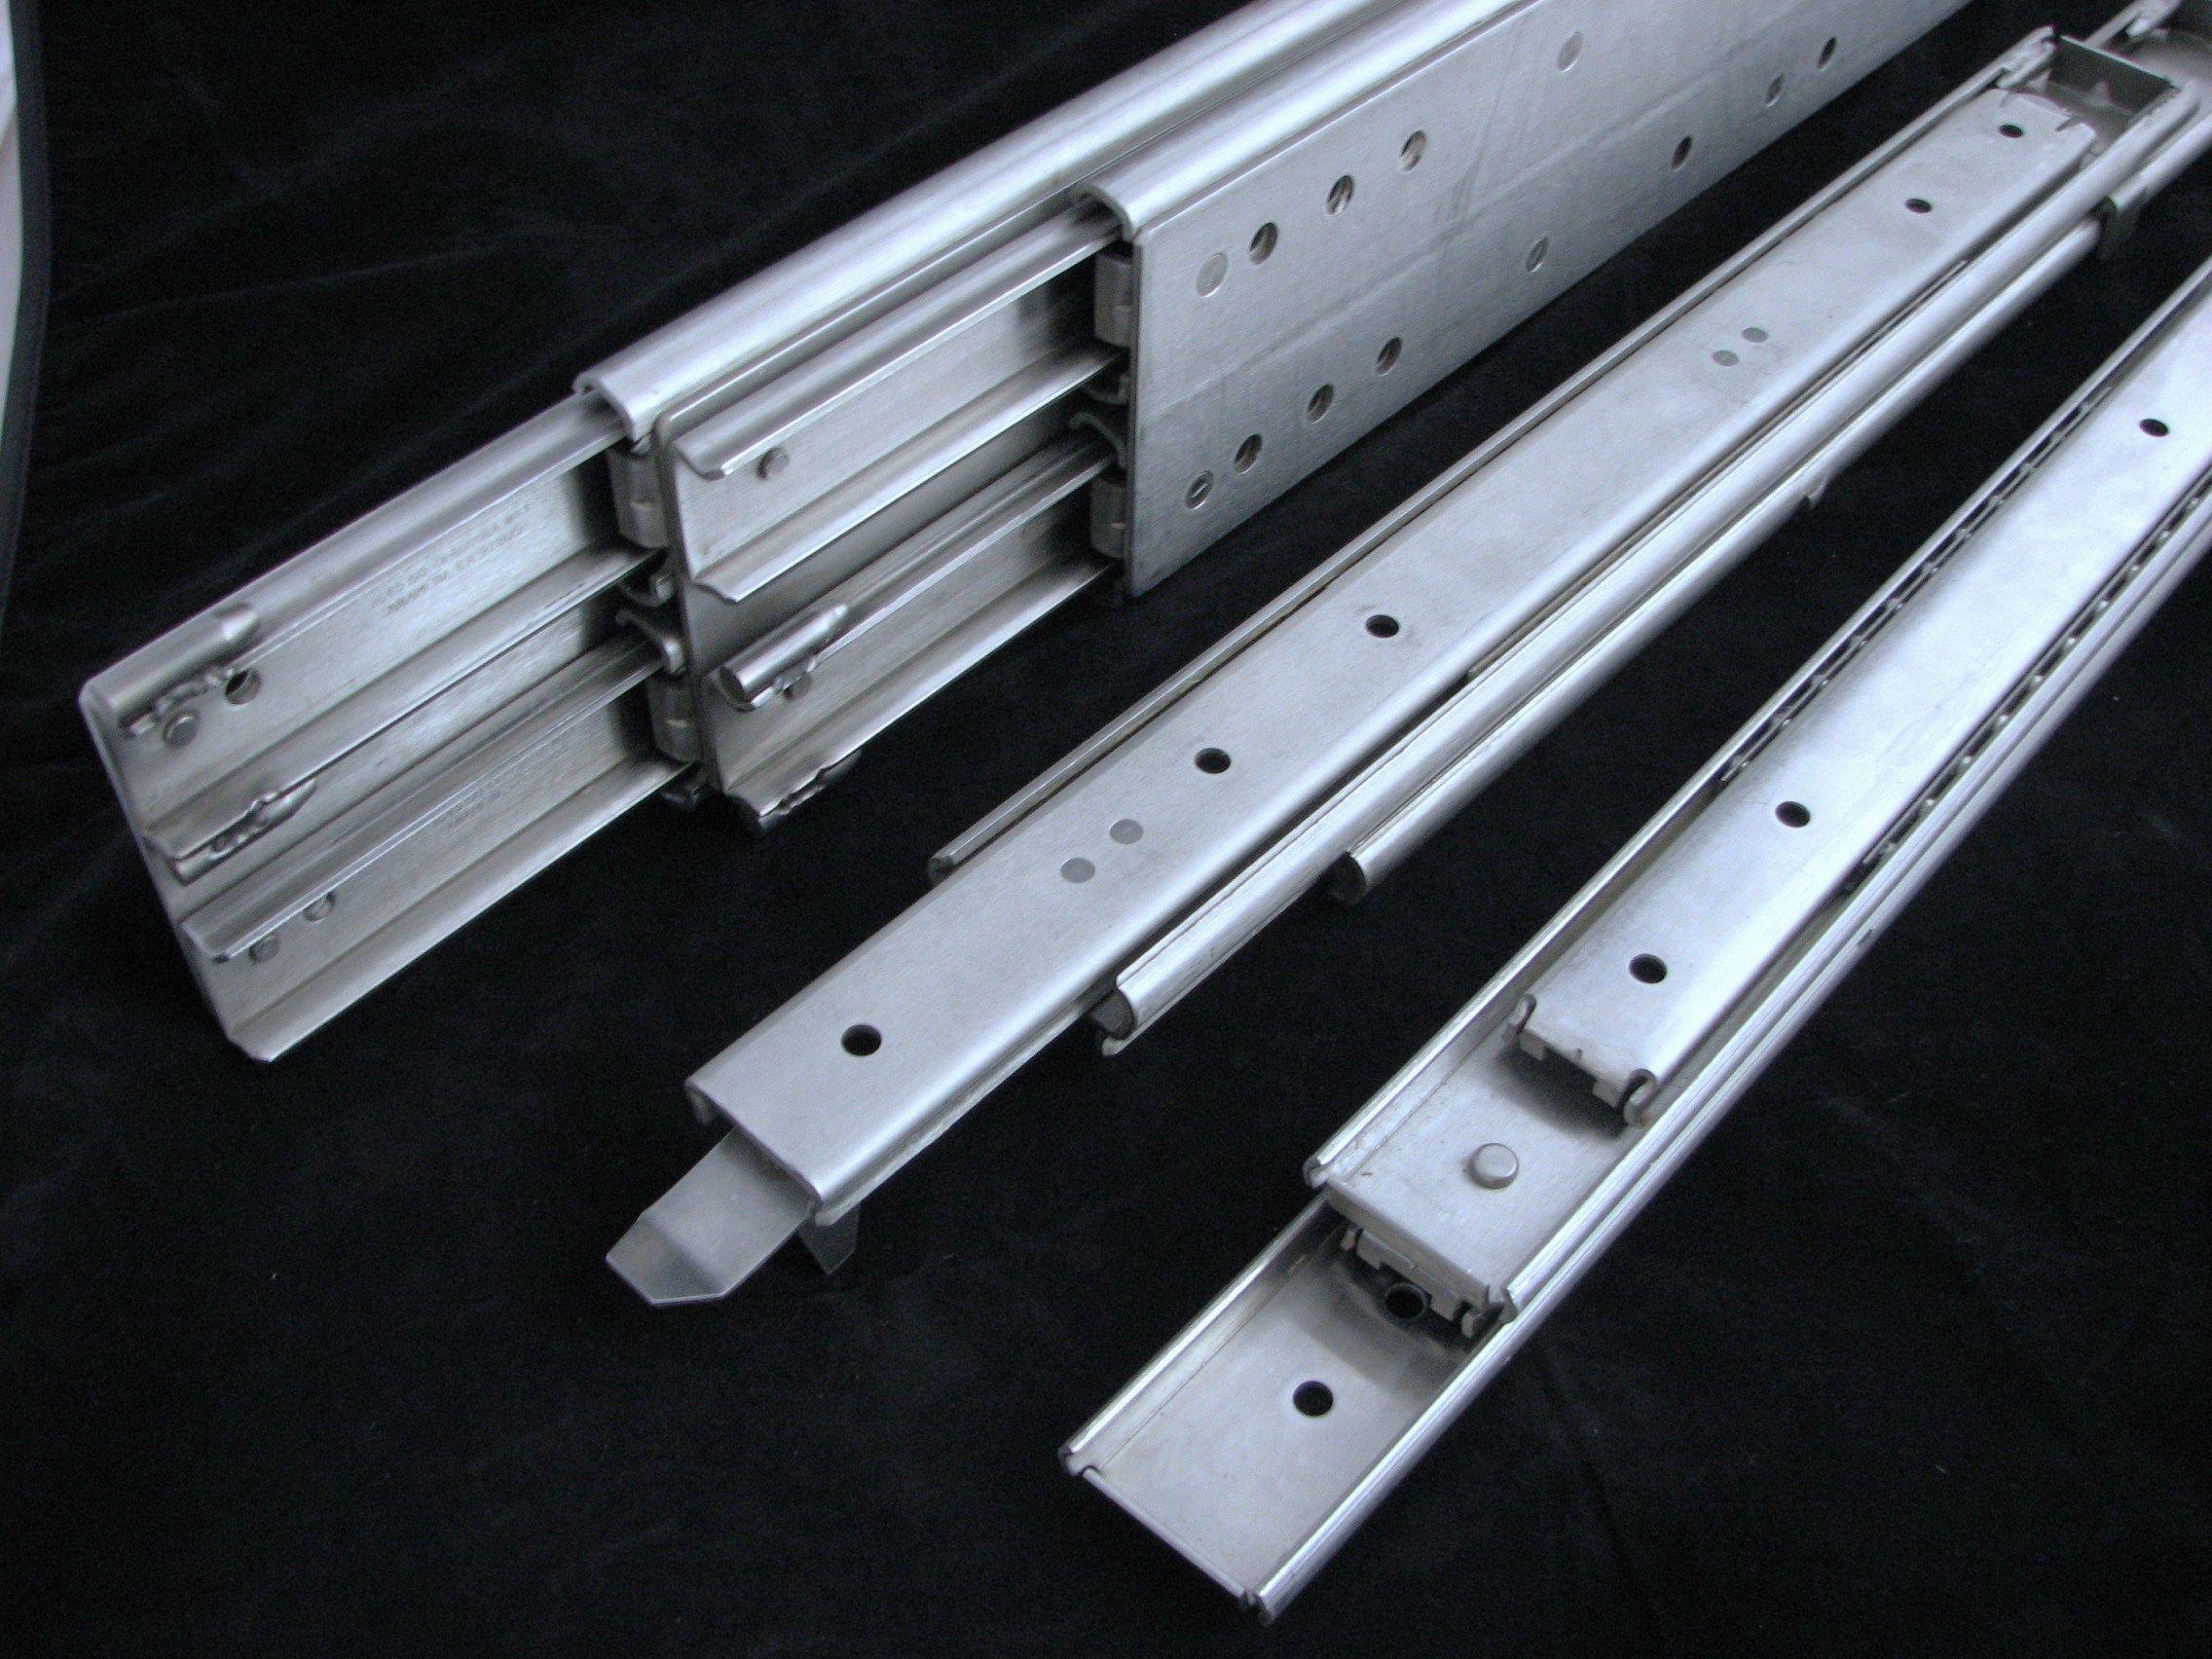 Heavy Duty drawer slide. Self, this is a great link to the